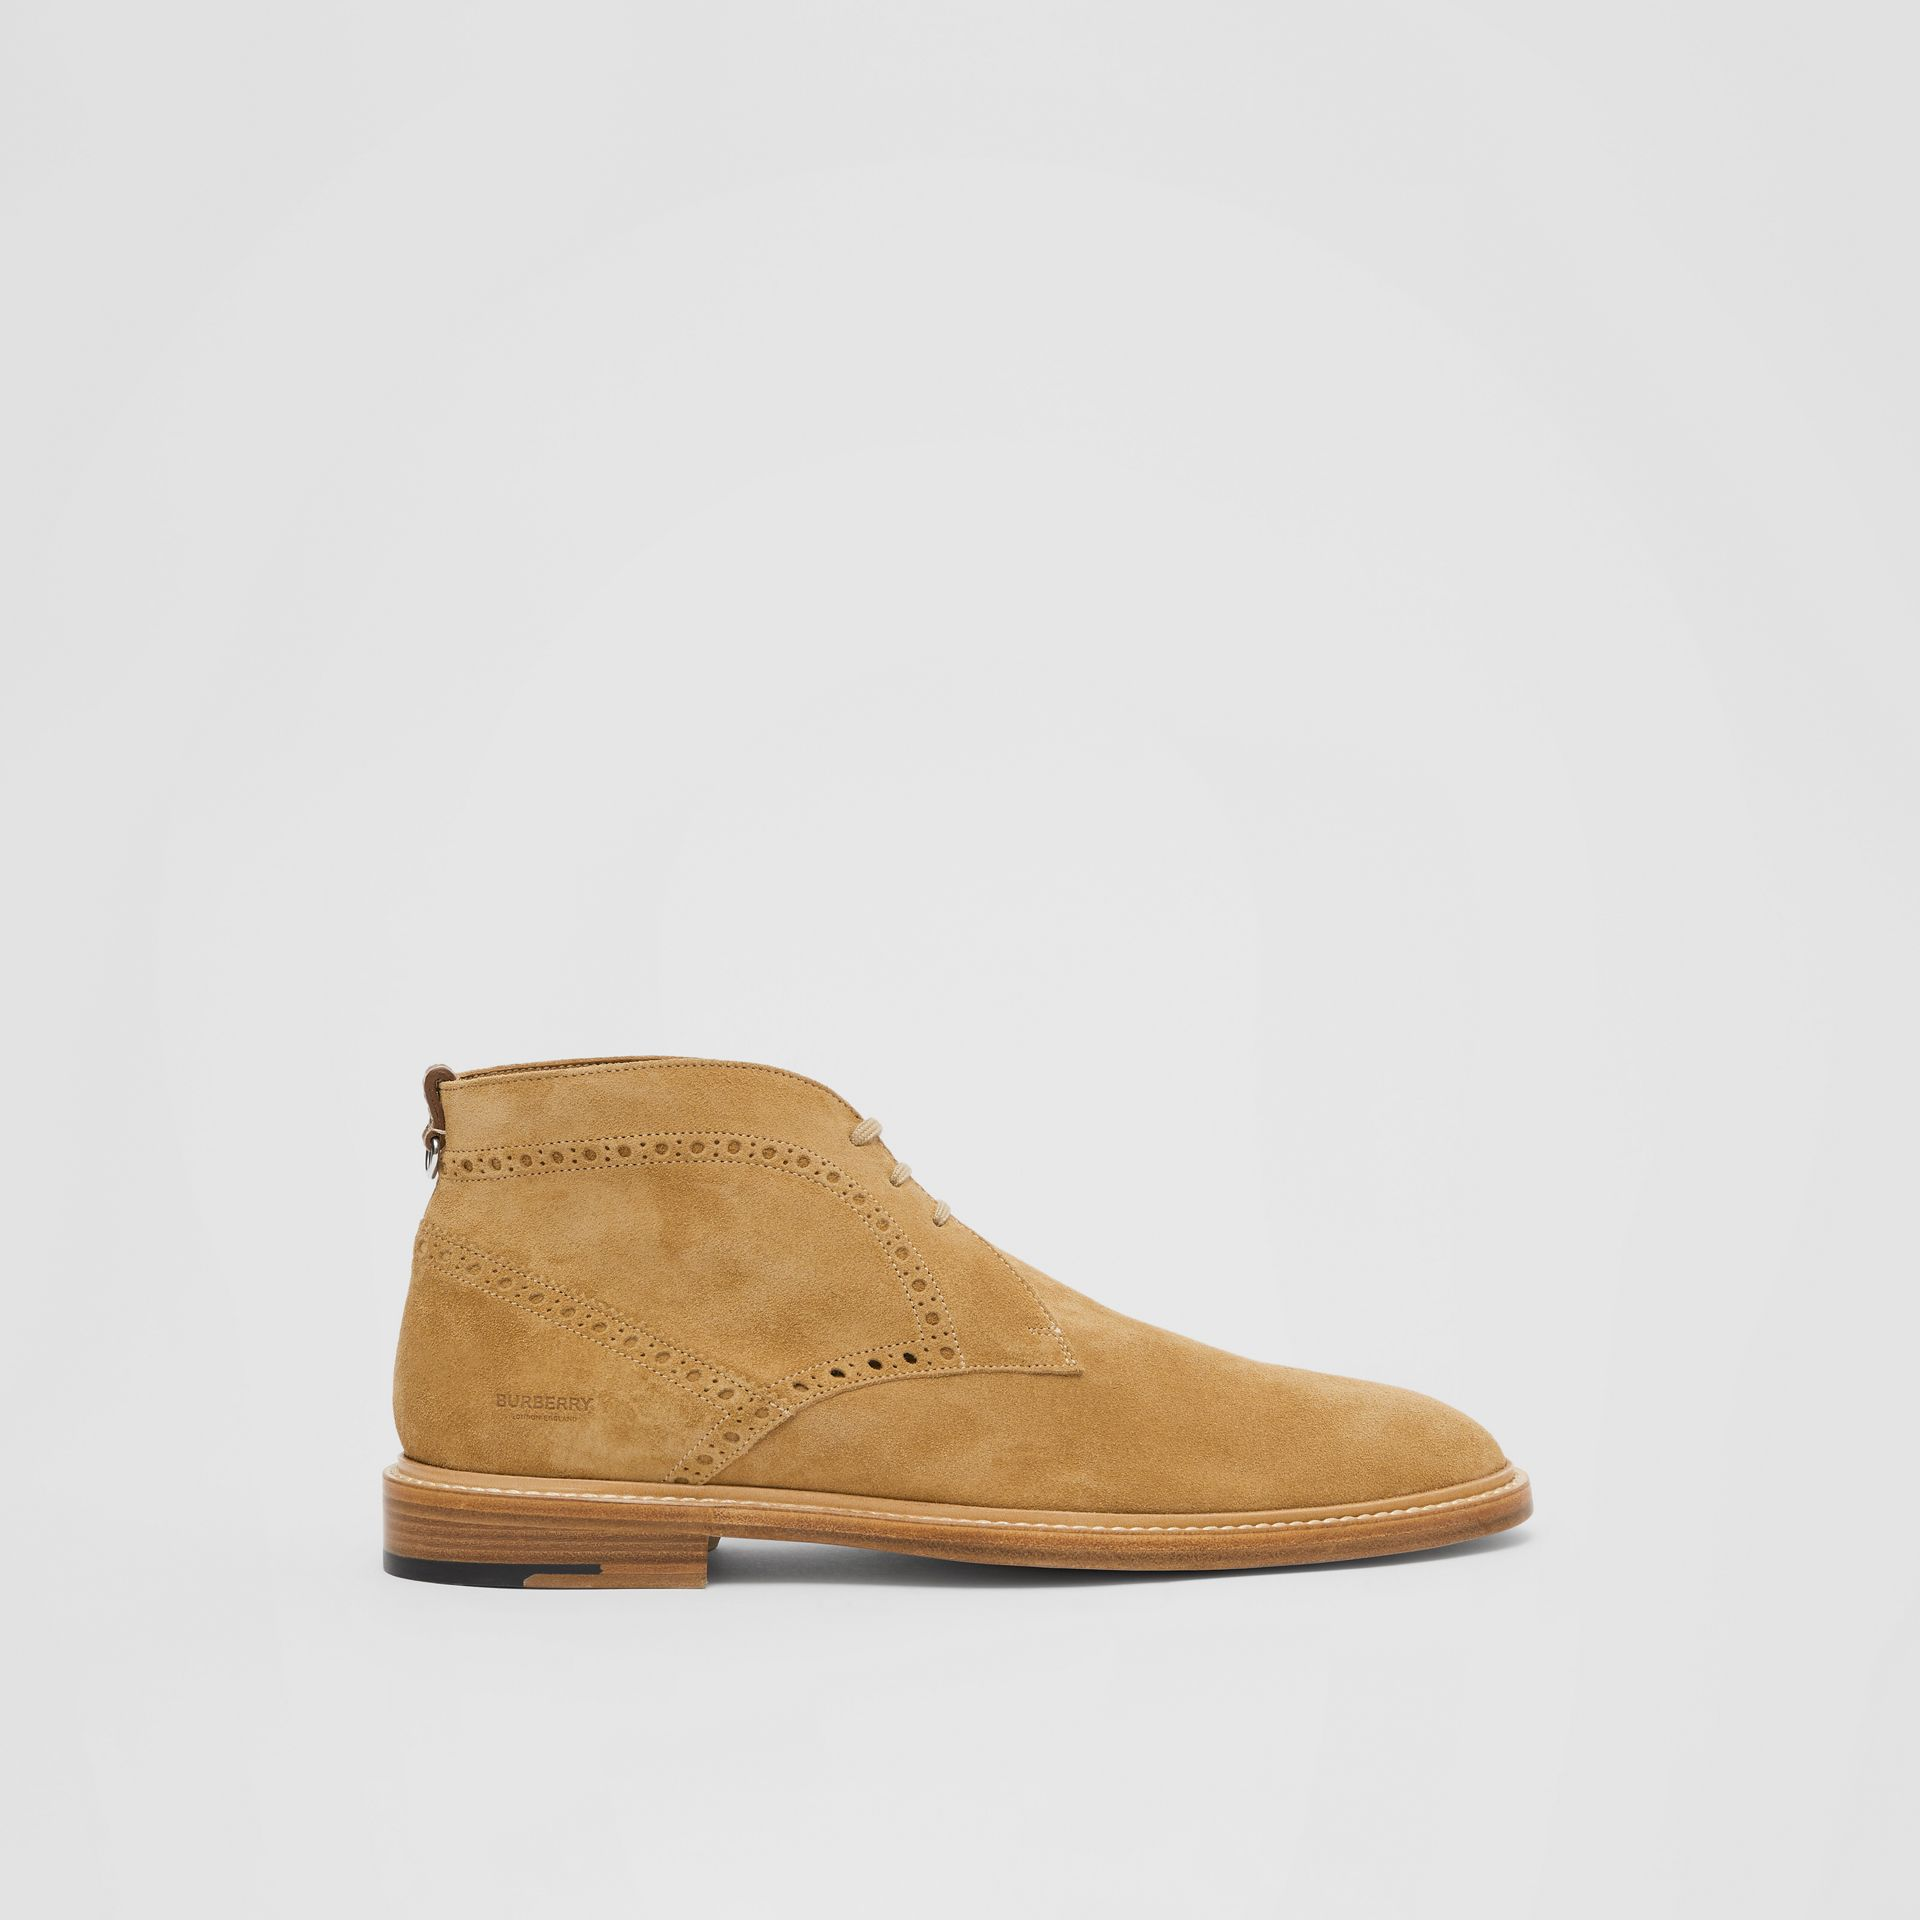 Brogue Detail Suede Boots in Sandy Beige - Men | Burberry - gallery image 4